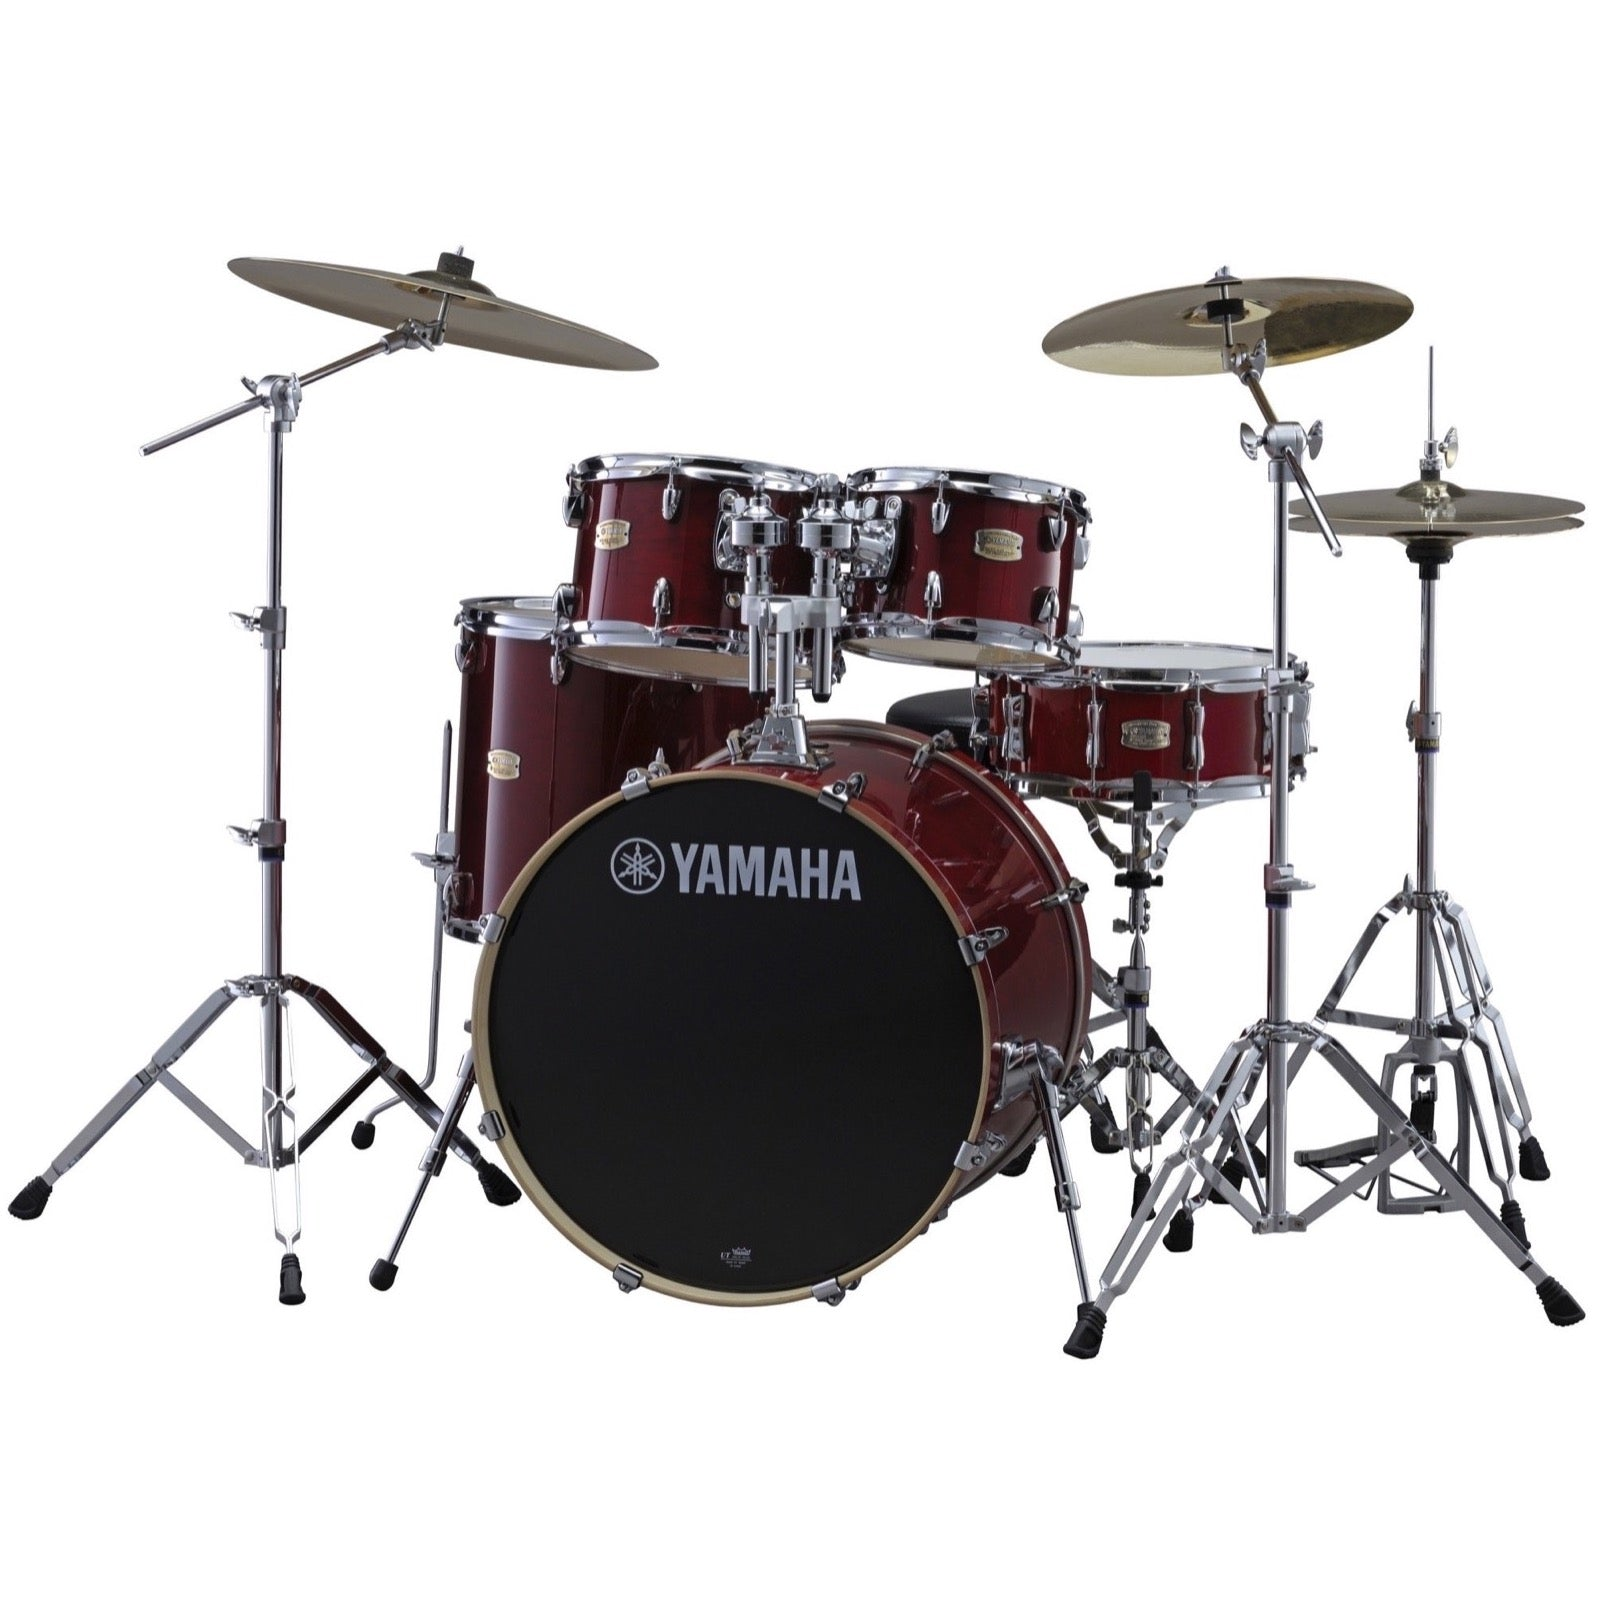 Yamaha SBP2F50 Stage Custom Drum Shell Kit, 5-Piece, Cranberry Red